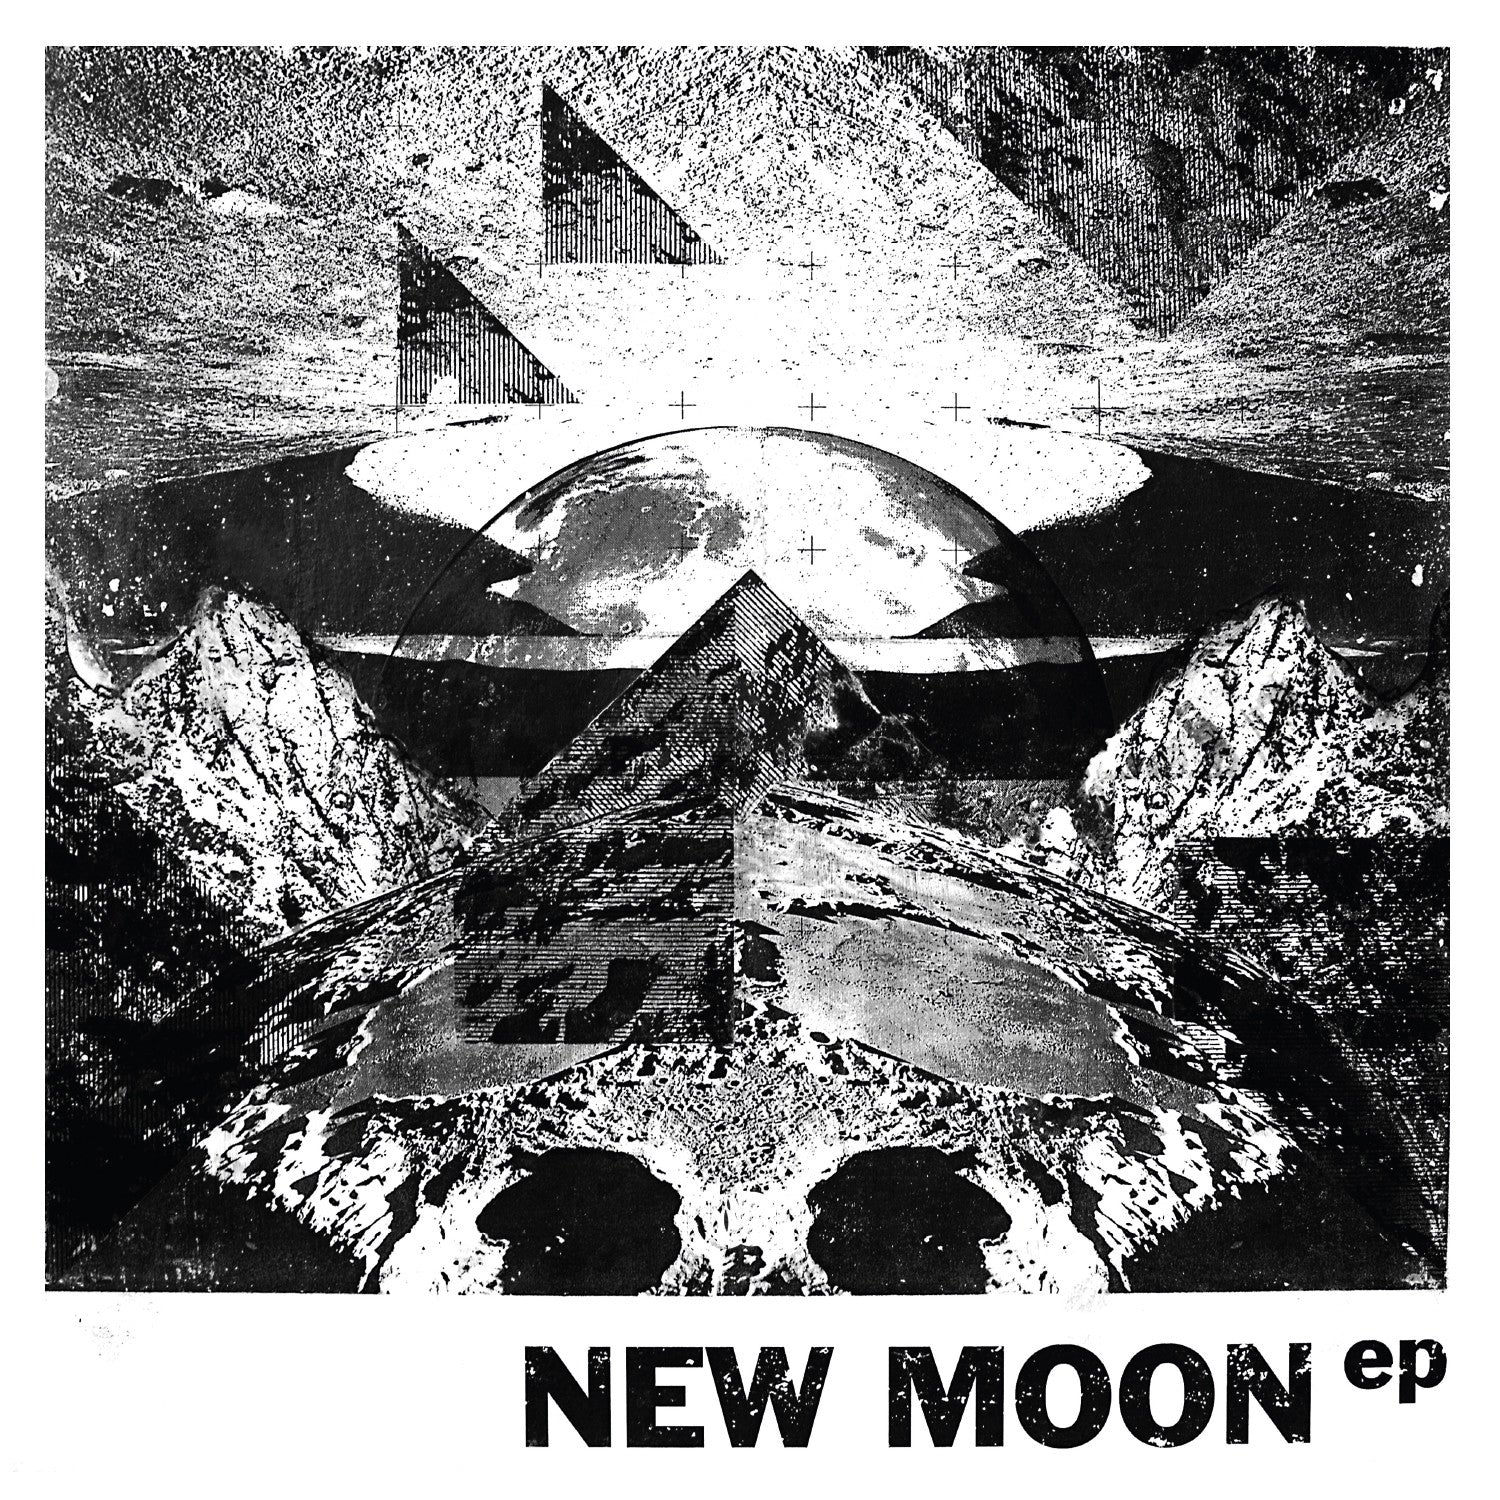 V.A - New Moon EP , Vinyl - Next Phase Records, Unearthed Sounds